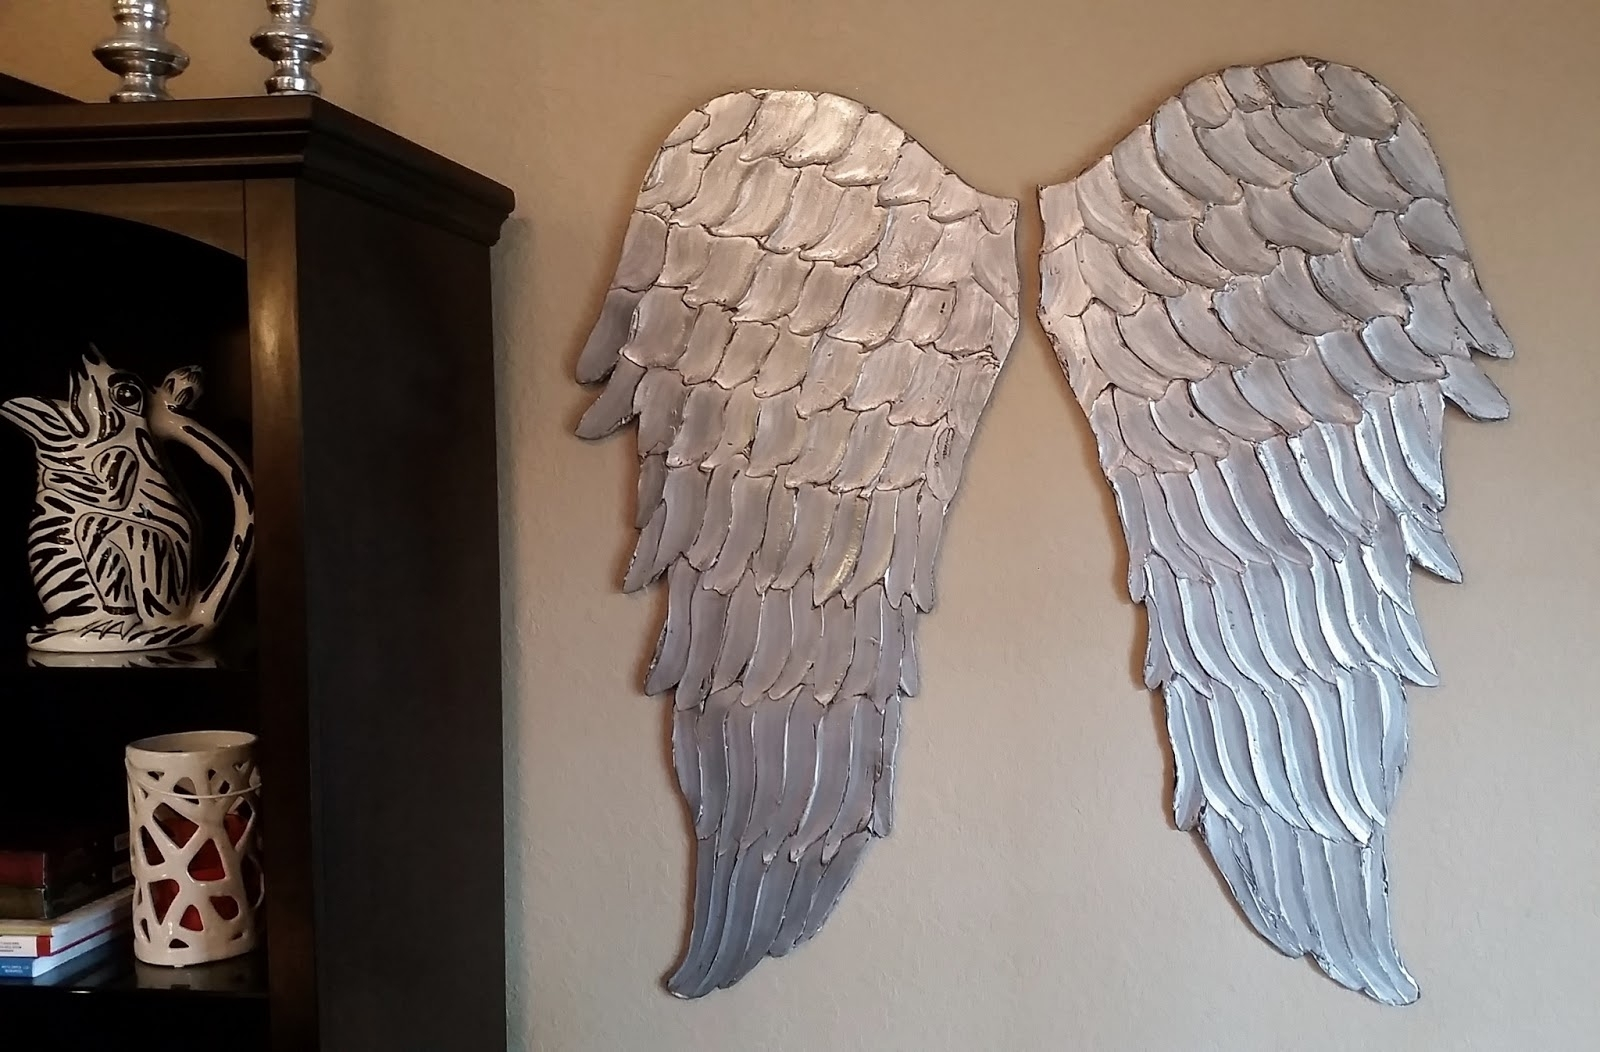 Wooden Angel Wings Wall Decor At Home And Interior Design Ideas Throughout 2018 Angel Wing Wall Art (View 15 of 15)